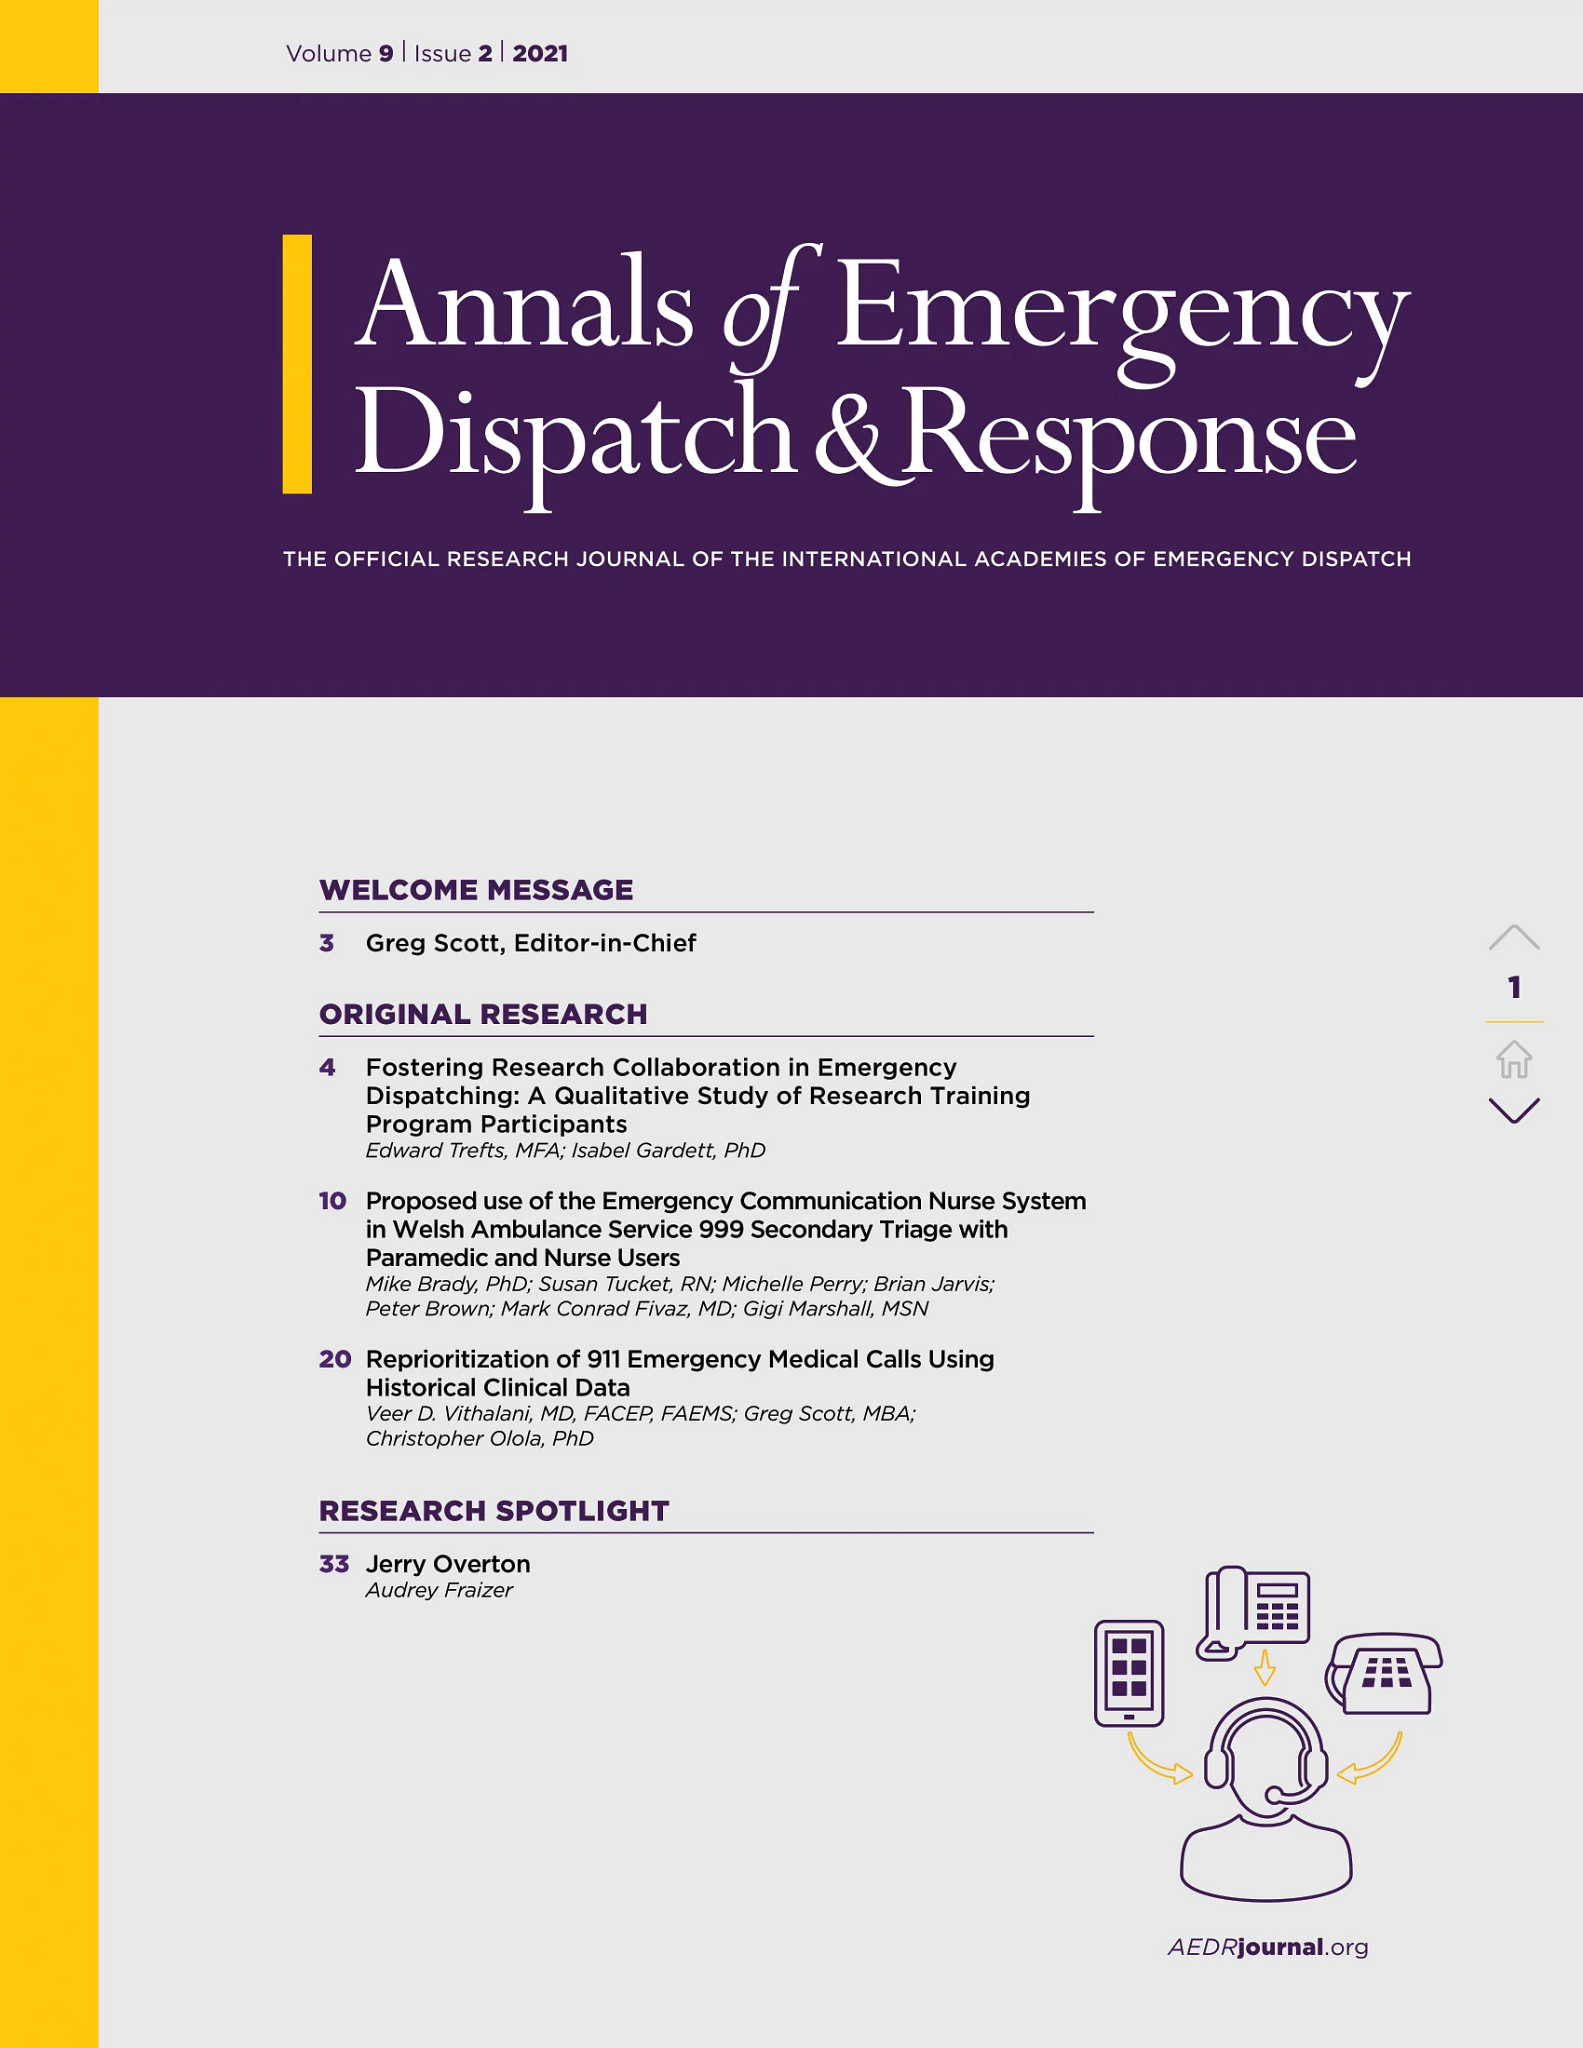 AEDR 2021 Vol. 9 Issue 2